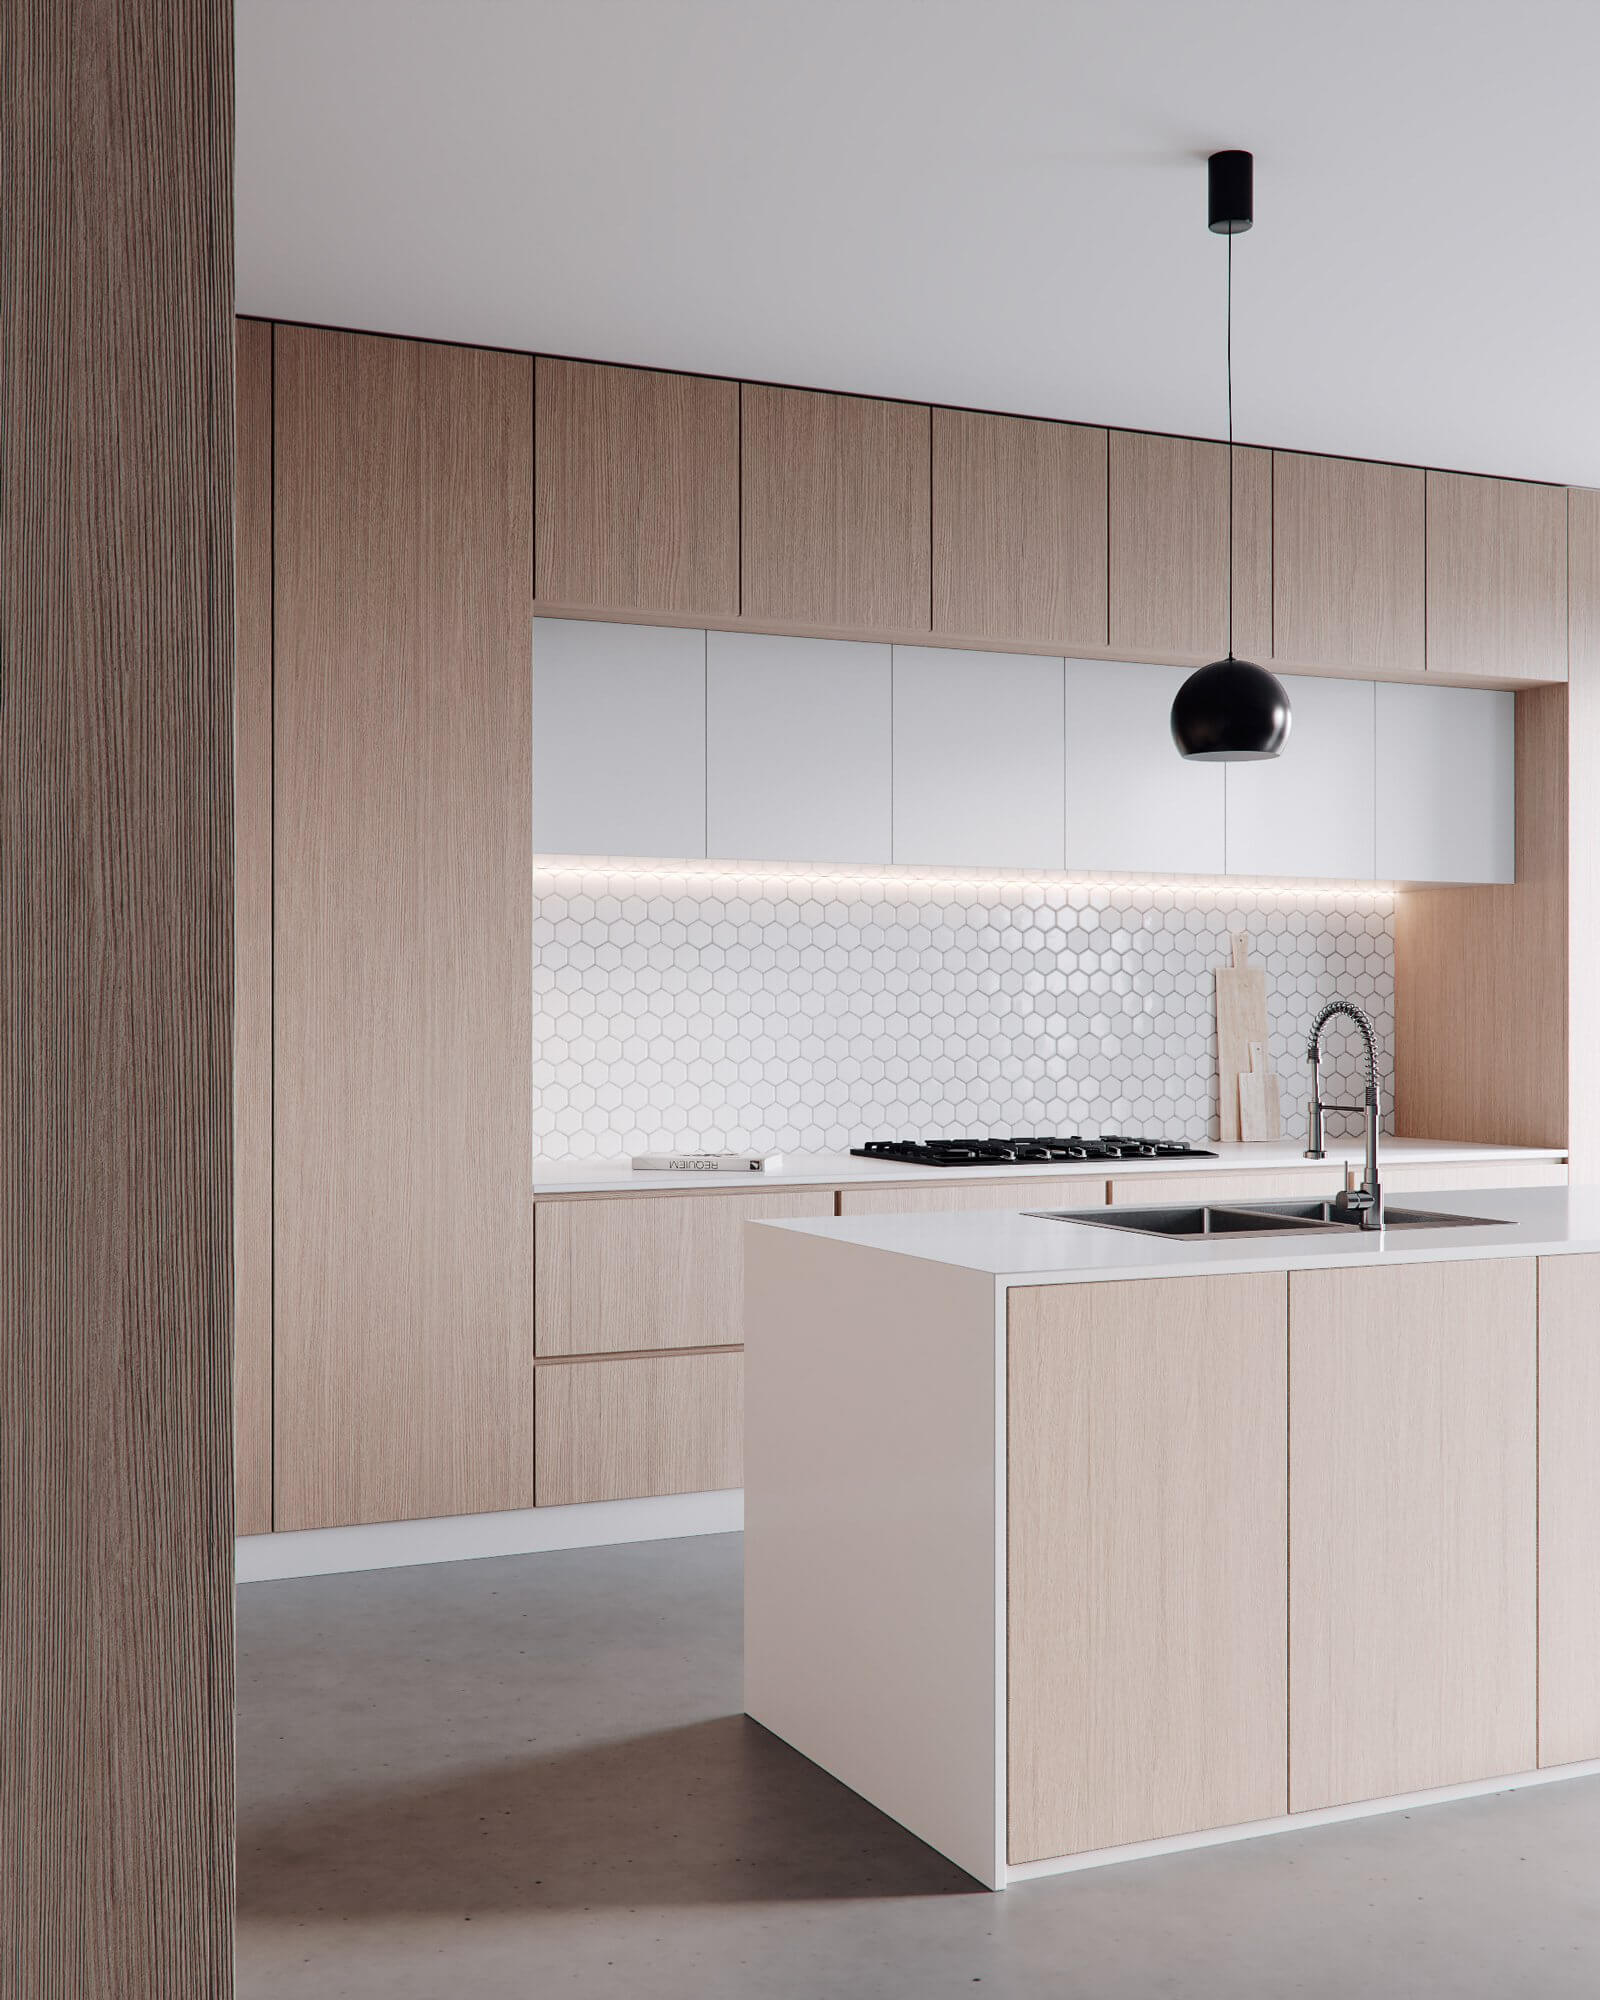 Minimalistic kitchen design wood white - cgi visualisation